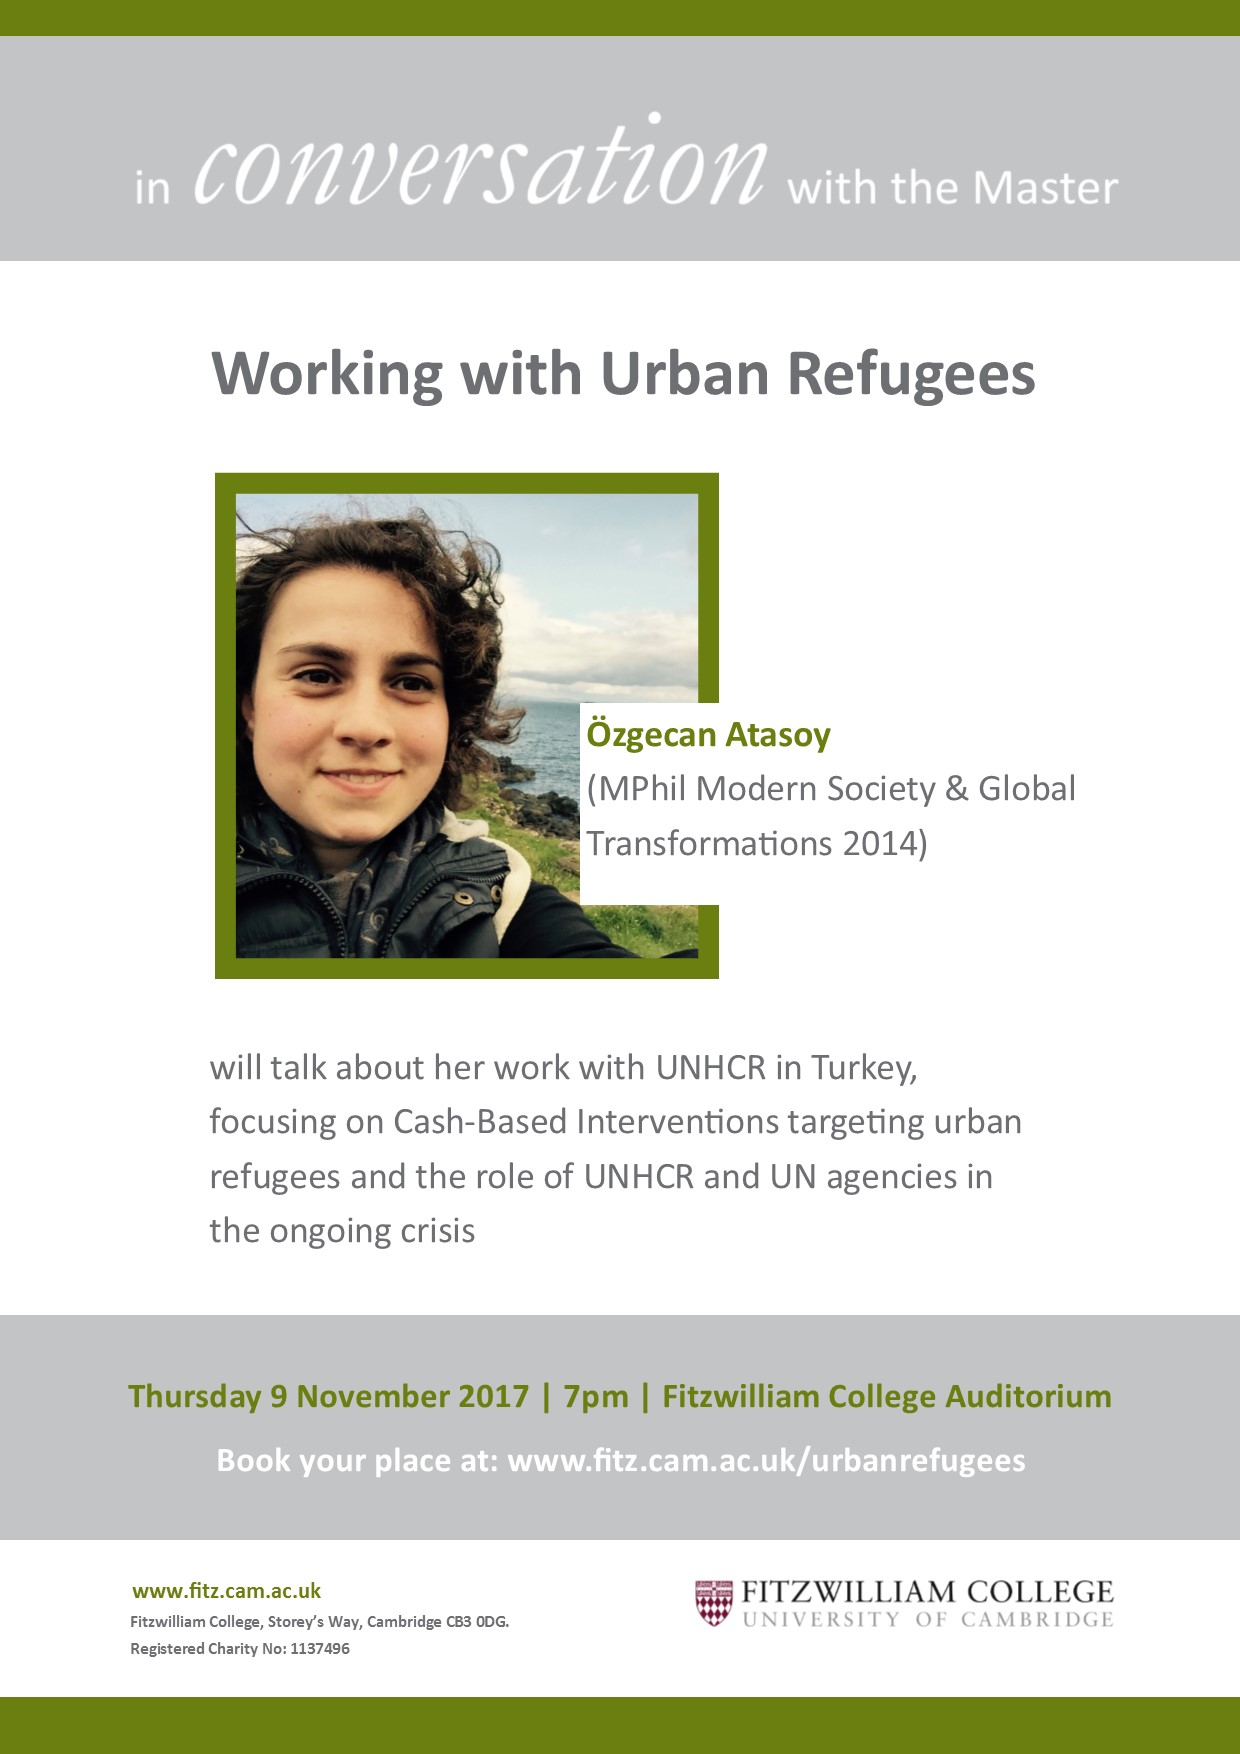 Working with Urban Refugees - In Conversation with the Master event November 2017